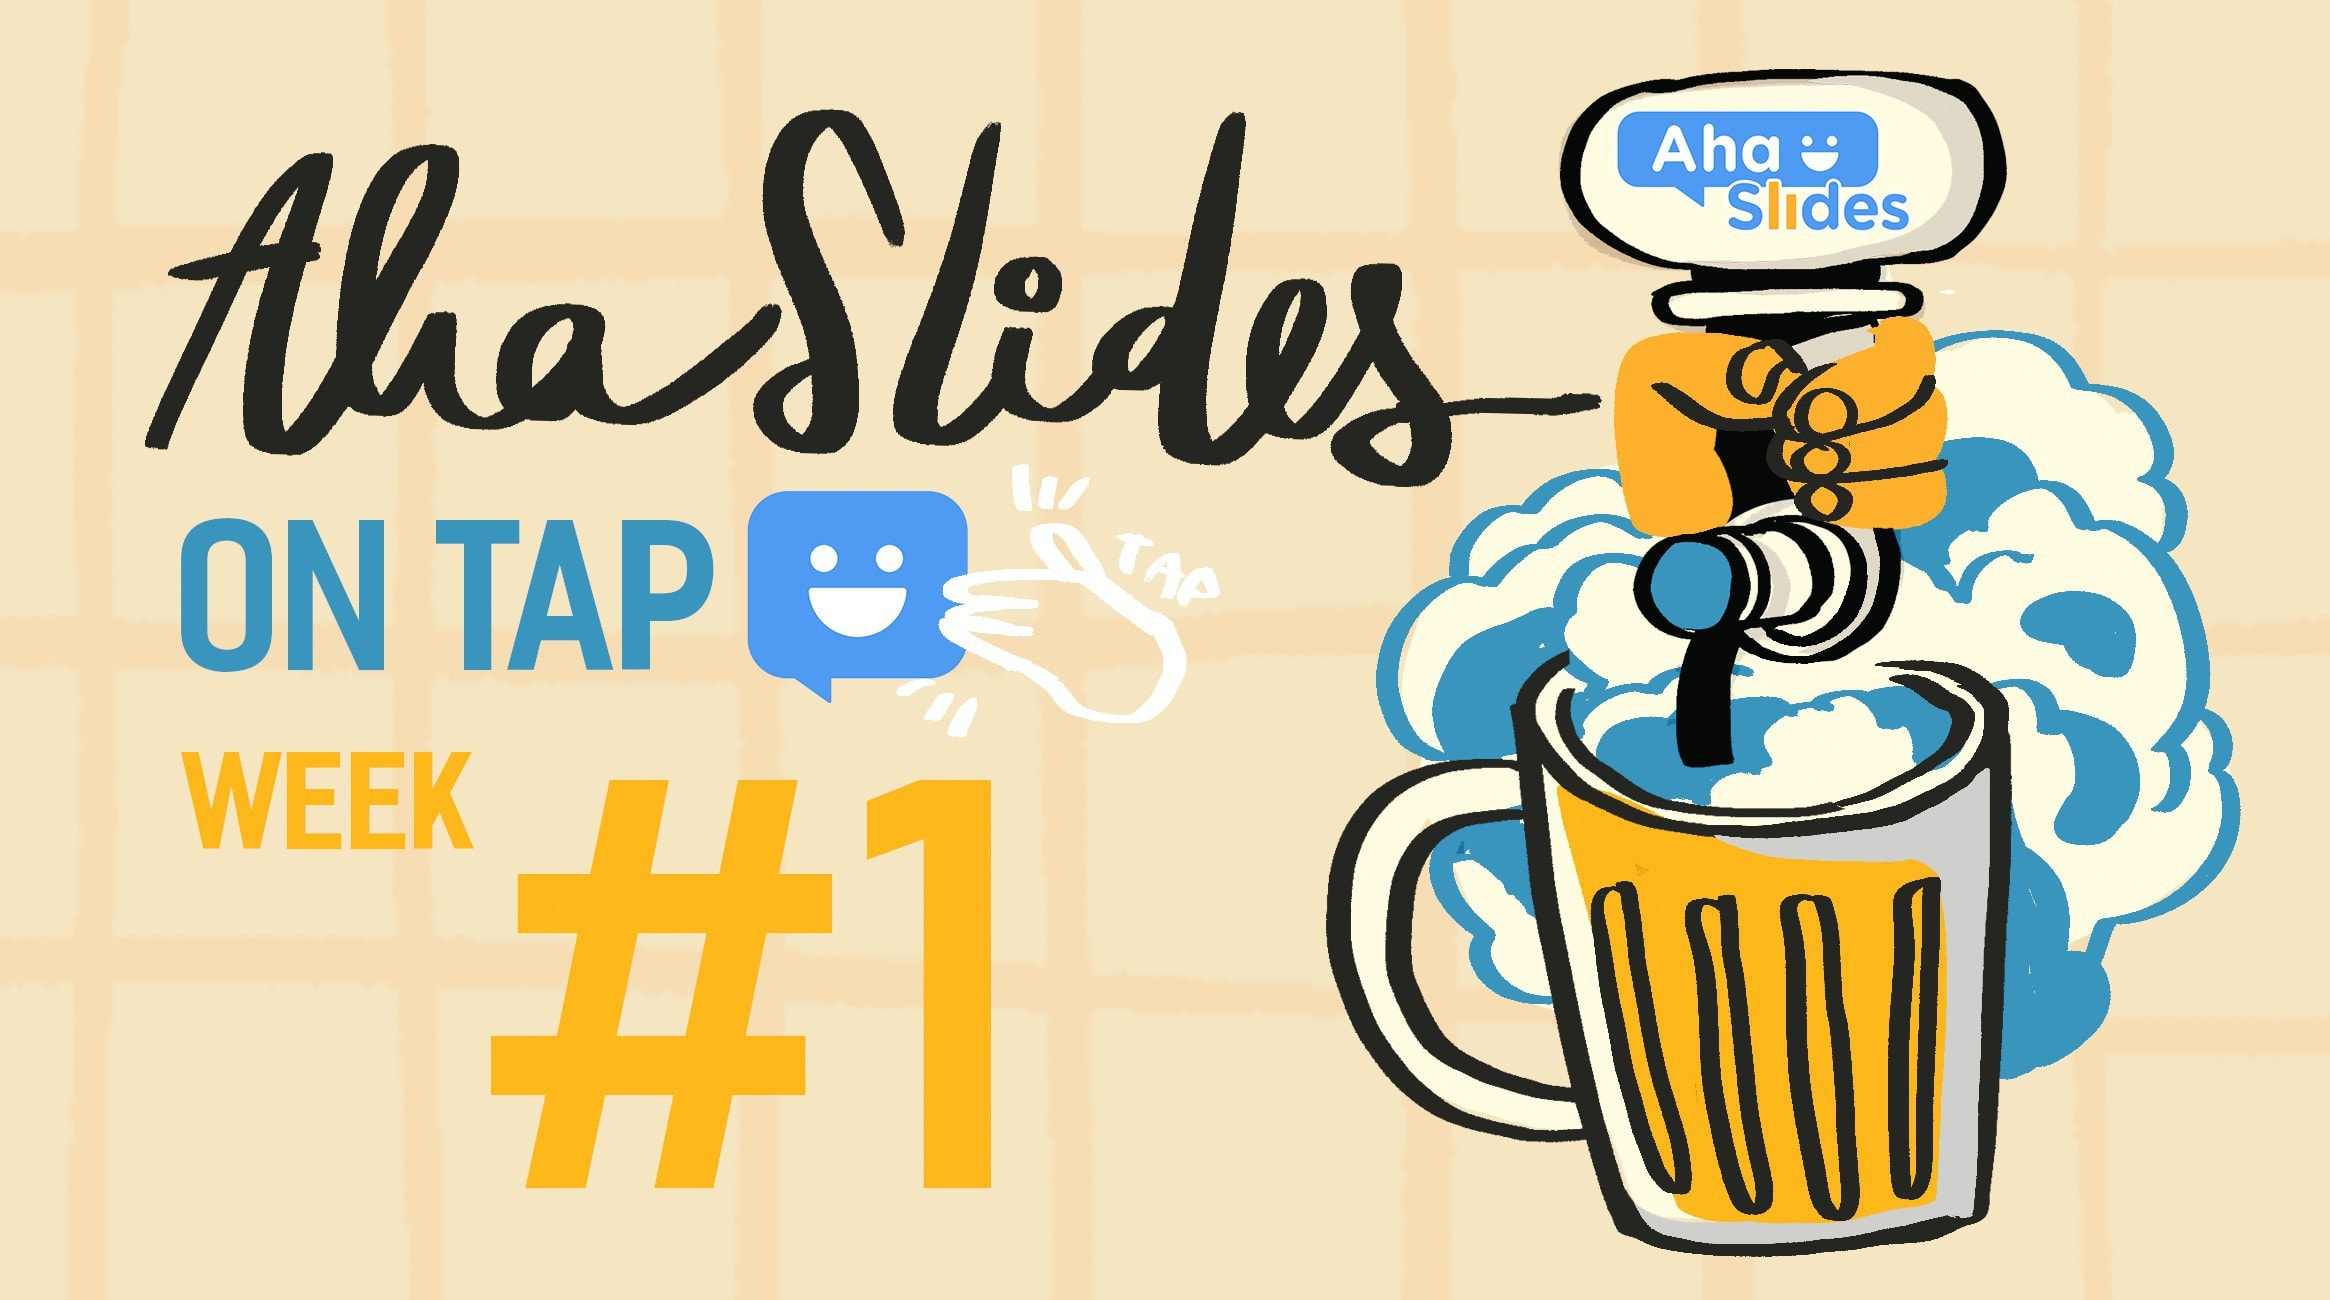 40 Pub Quiz Questions and Answers: AhaSlides on Tap #4 (Free Download!)